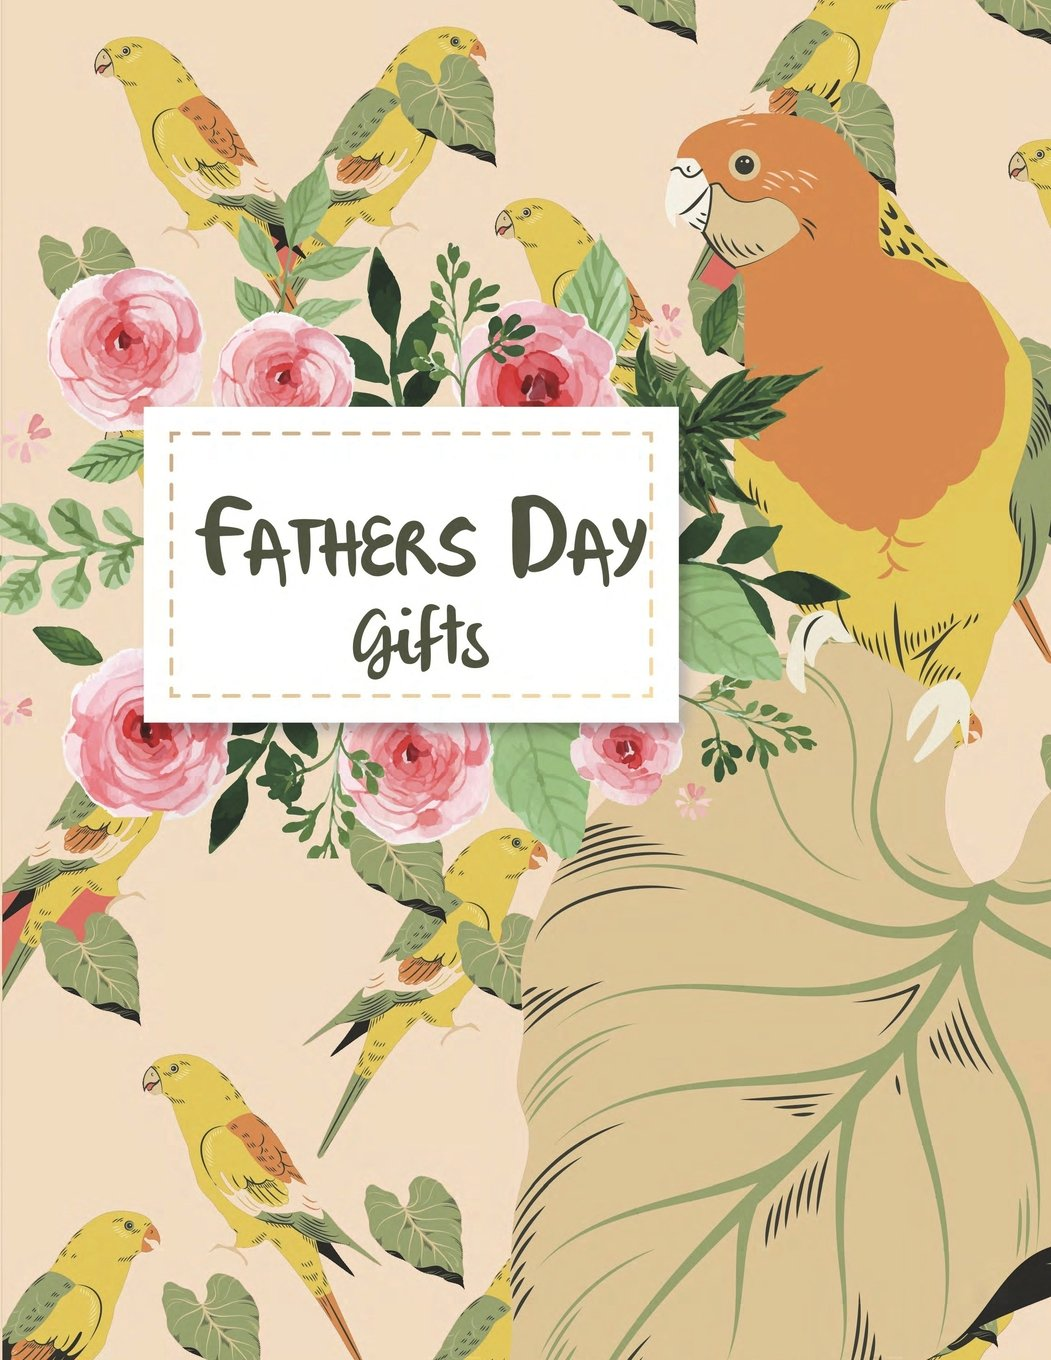 """Fathers Day Gifts: Dot Grid Journal: Perfect For Father's Day Gifts, My Dad's Story, Grandfathers,Father's Memoirs Log, Holiday Shopping (Gifts for Dads) List 120 pages - 8.5"""" x 11"""" pdf"""